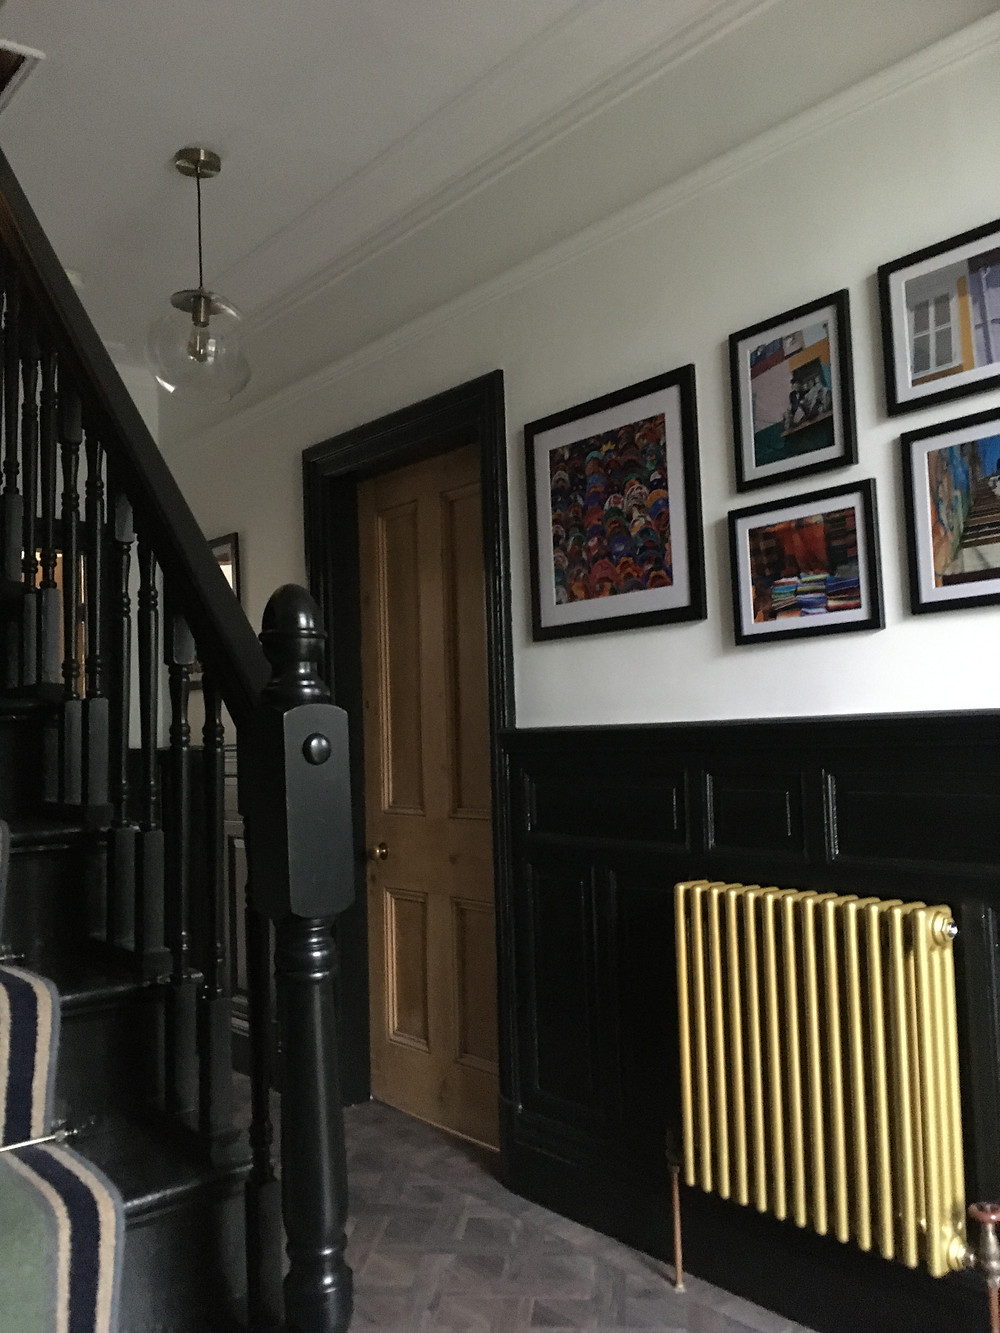 Radiator To Suit Your Home - Fresh Start Living